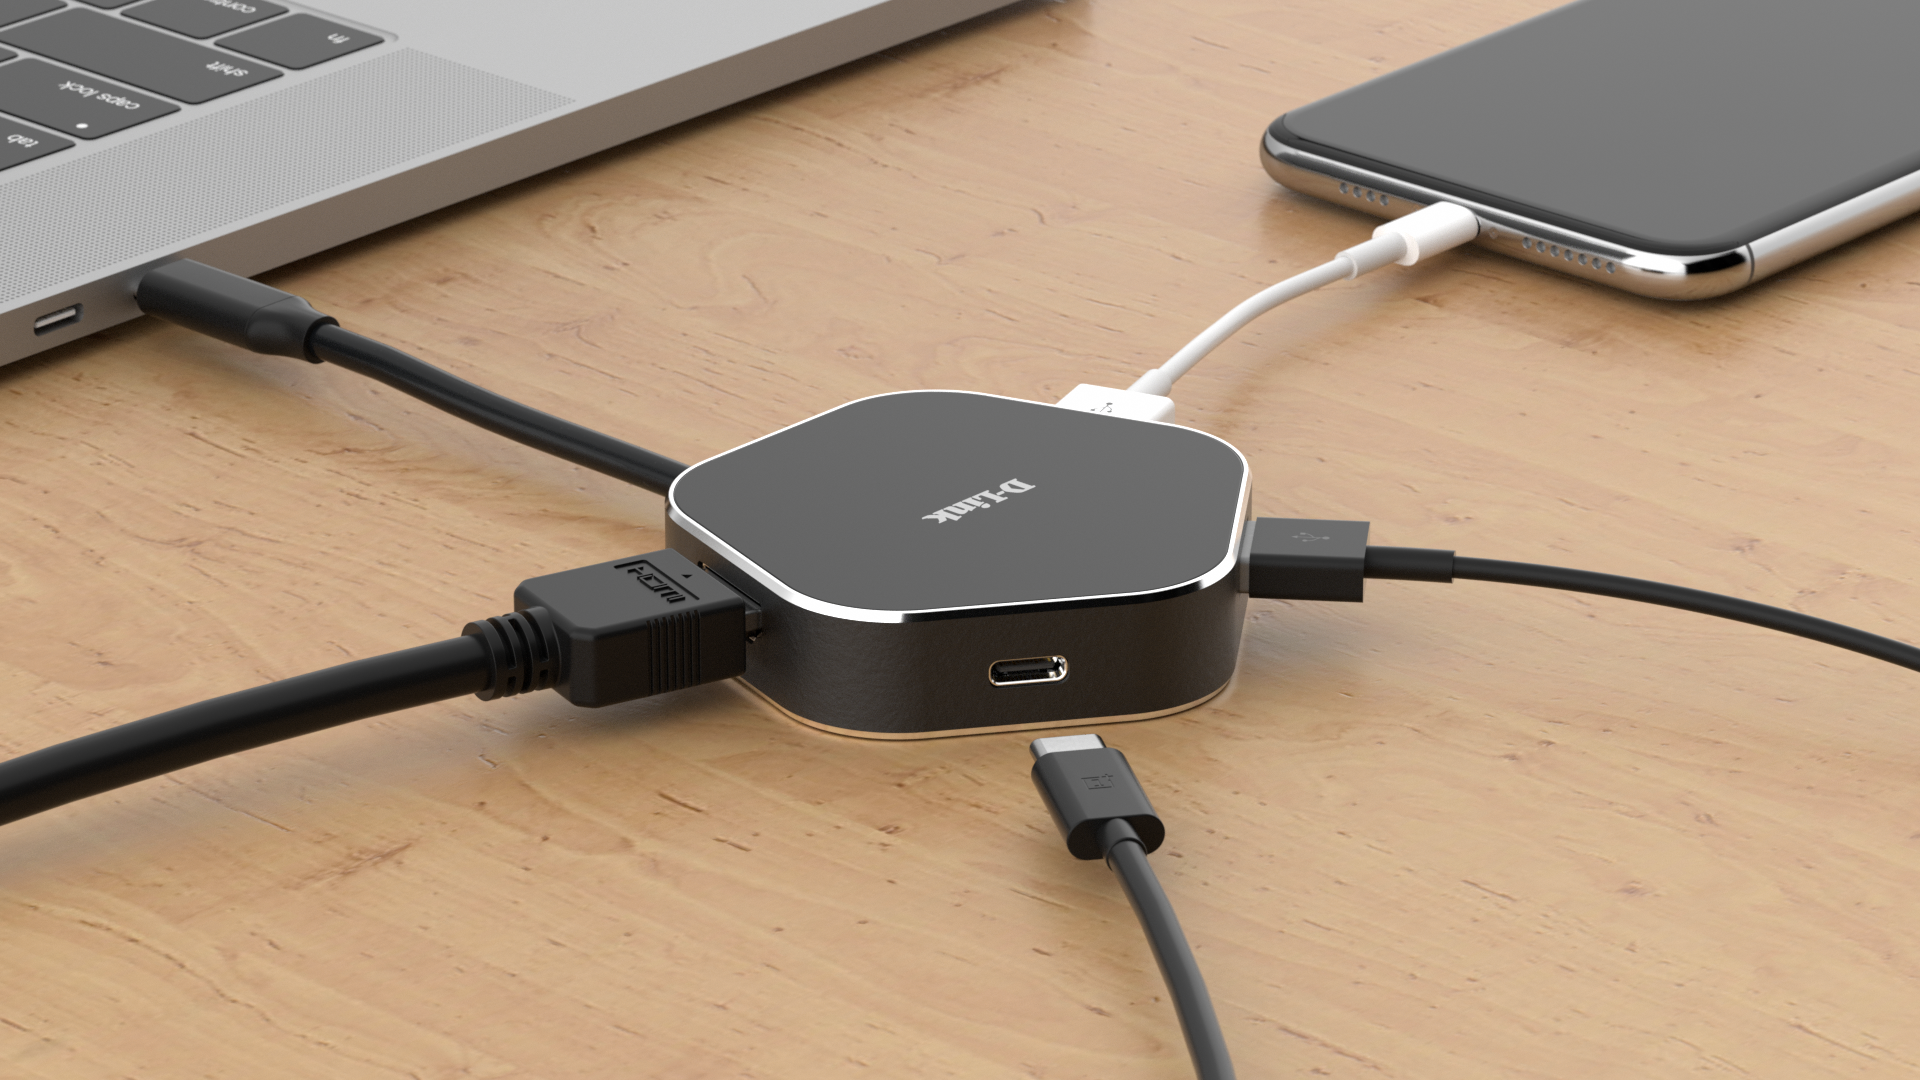 DUB-M420 USB-C to 4-Port USB 3.0 Hub - on a desk, connected to a laptop with example connections